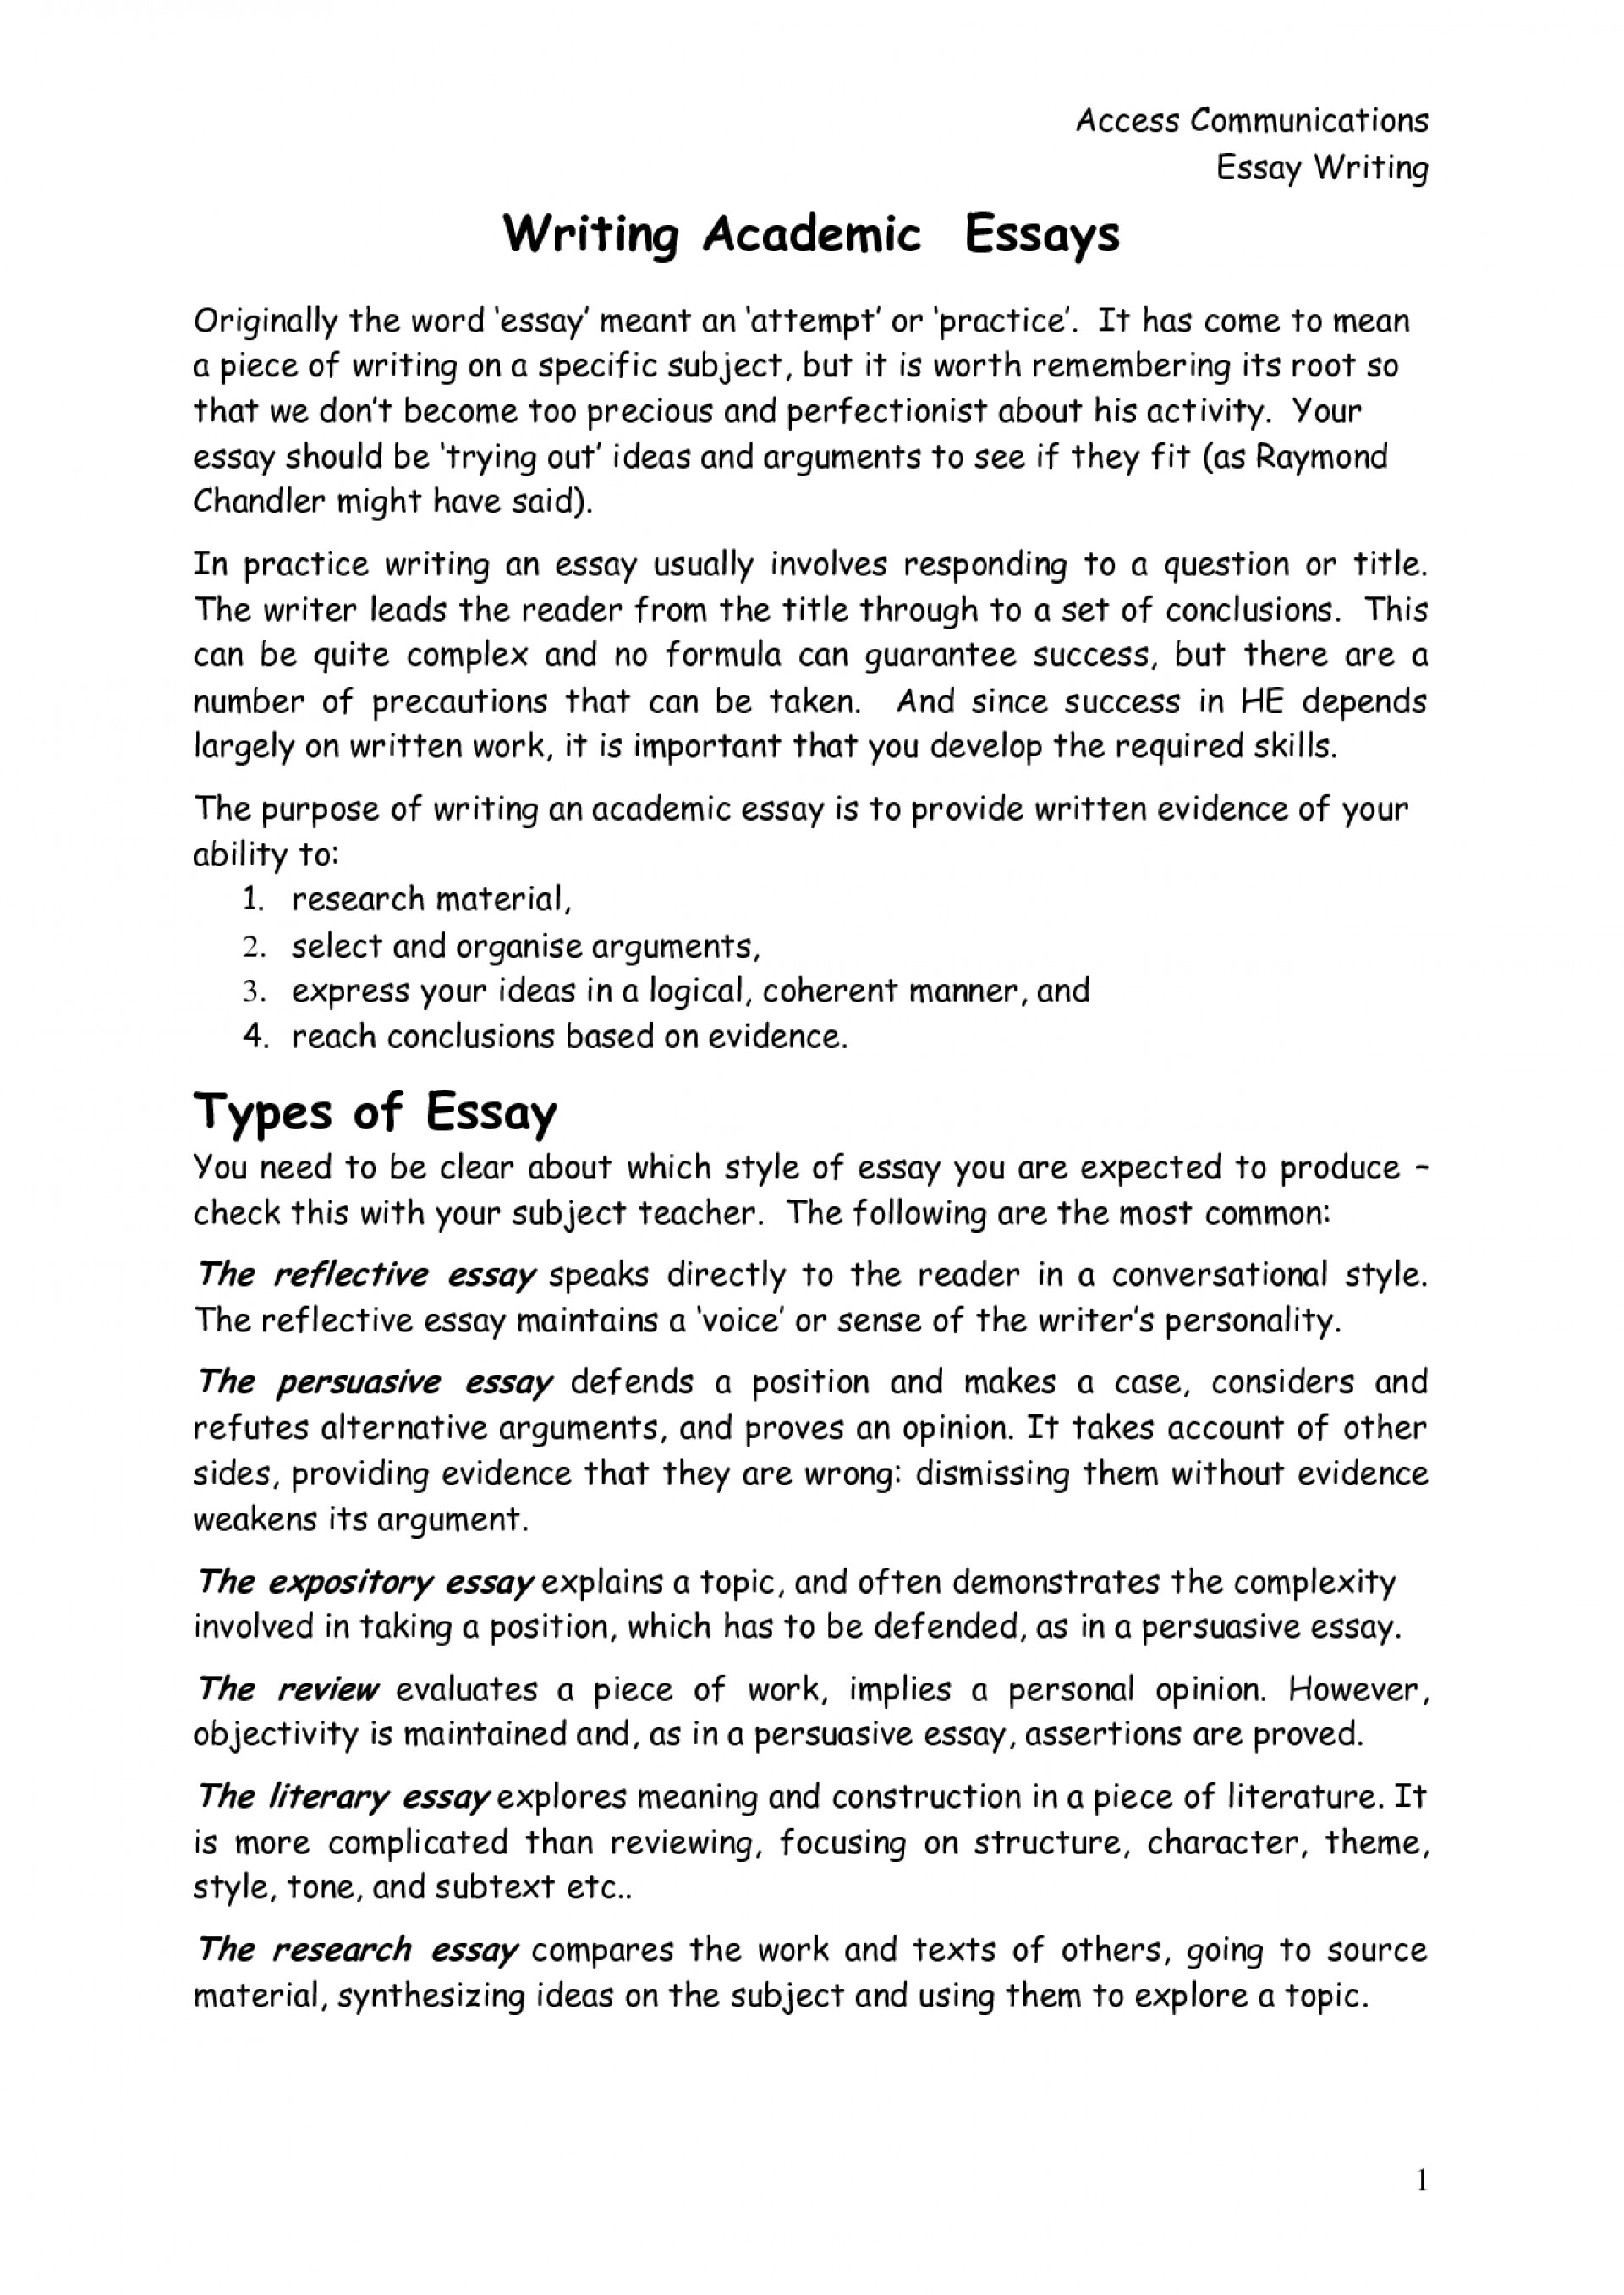 017 Essay Example Write For Me Amazing College My Cheap Uk Discount Code 1920